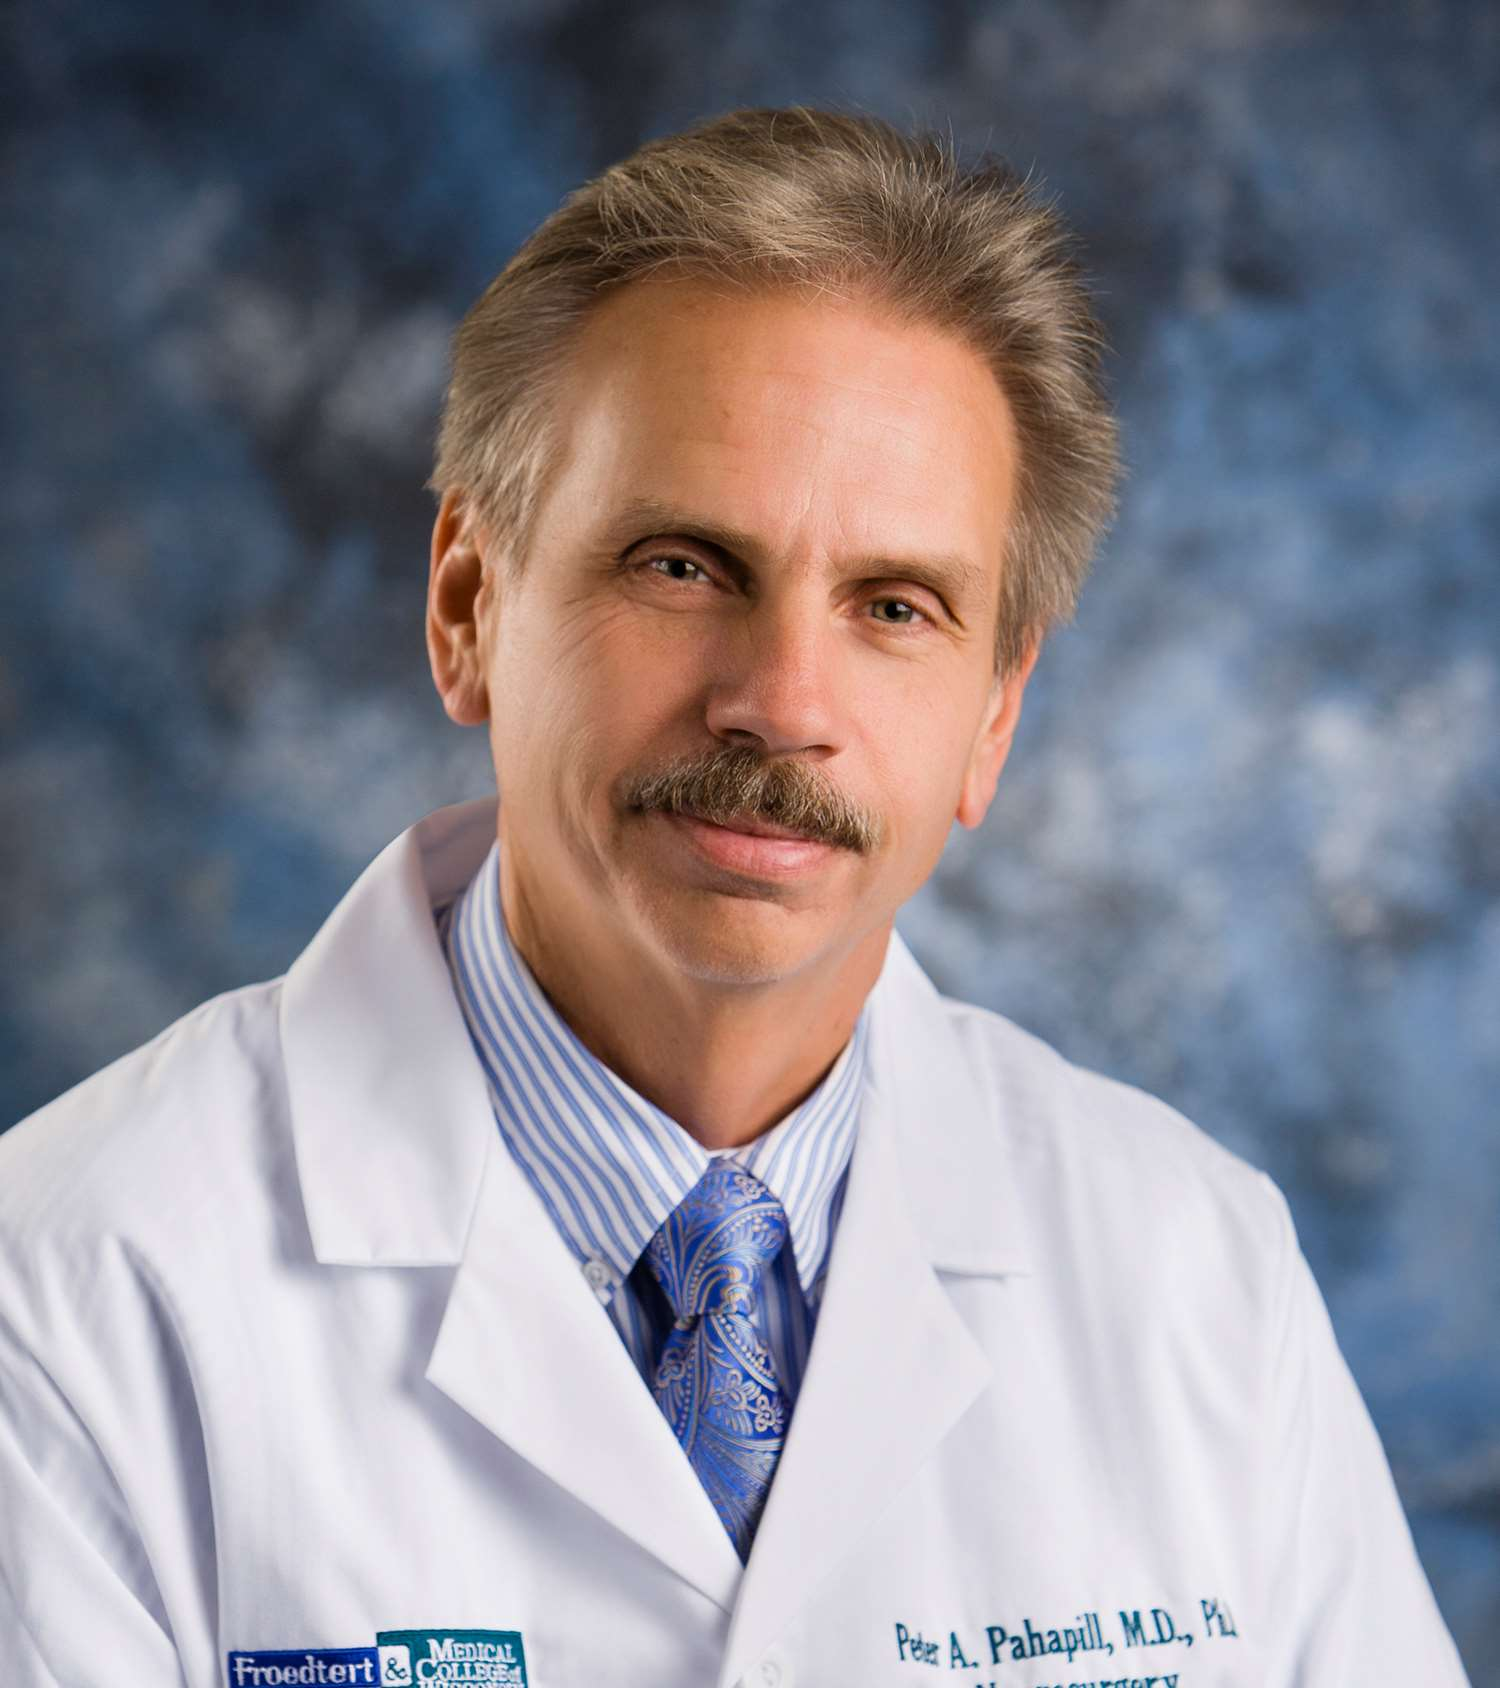 Peter Pahapill, MD, PhD, FACS, FRCSC